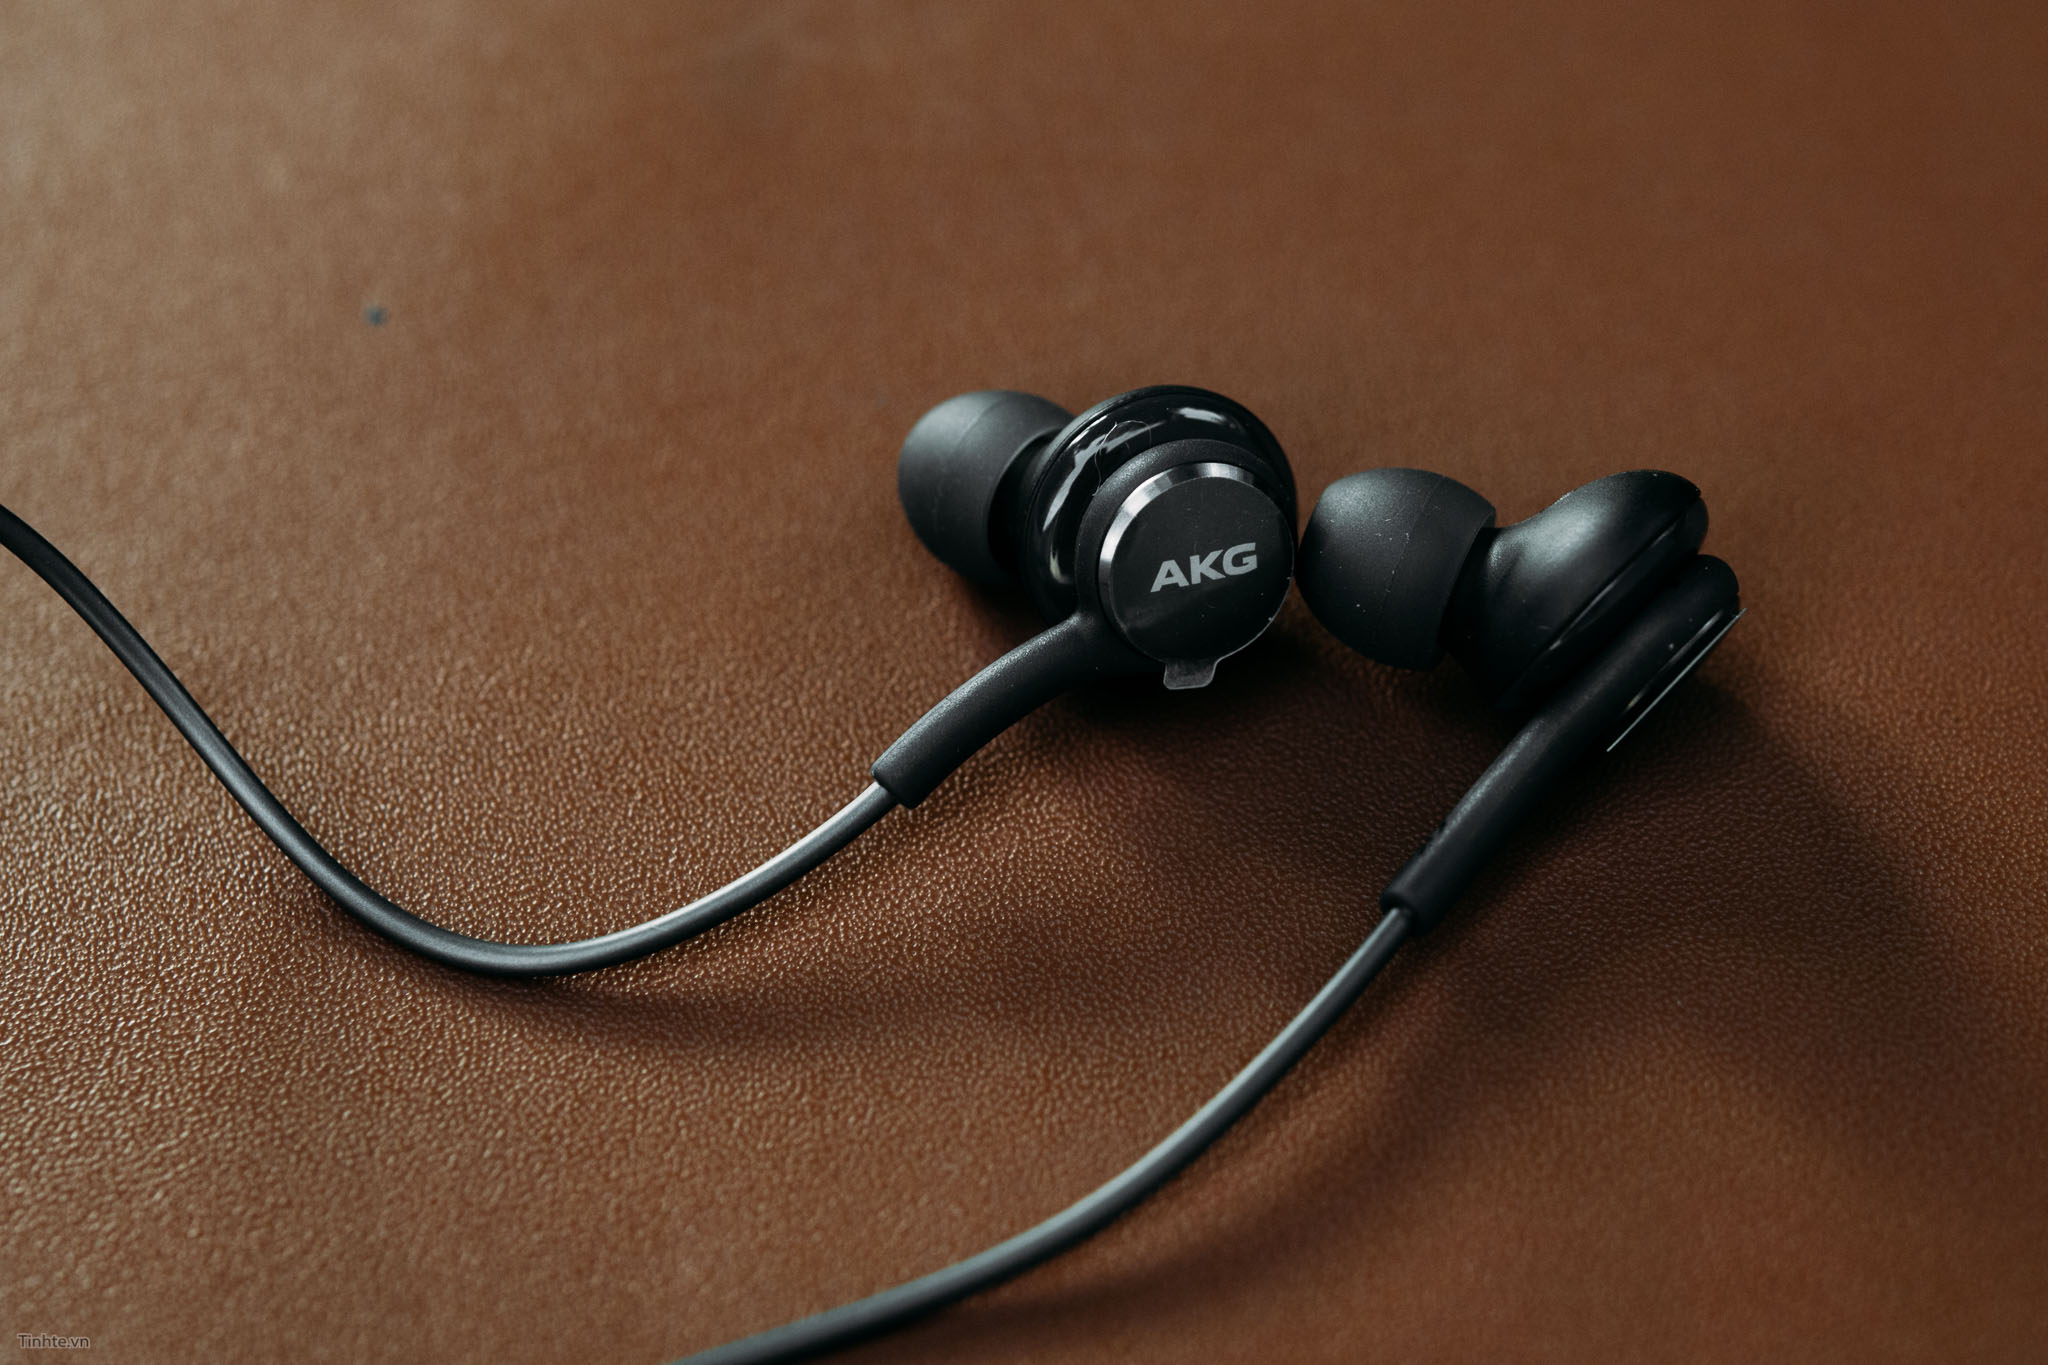 tai-nghe-akg-s8-s8-plus-note-8-zin